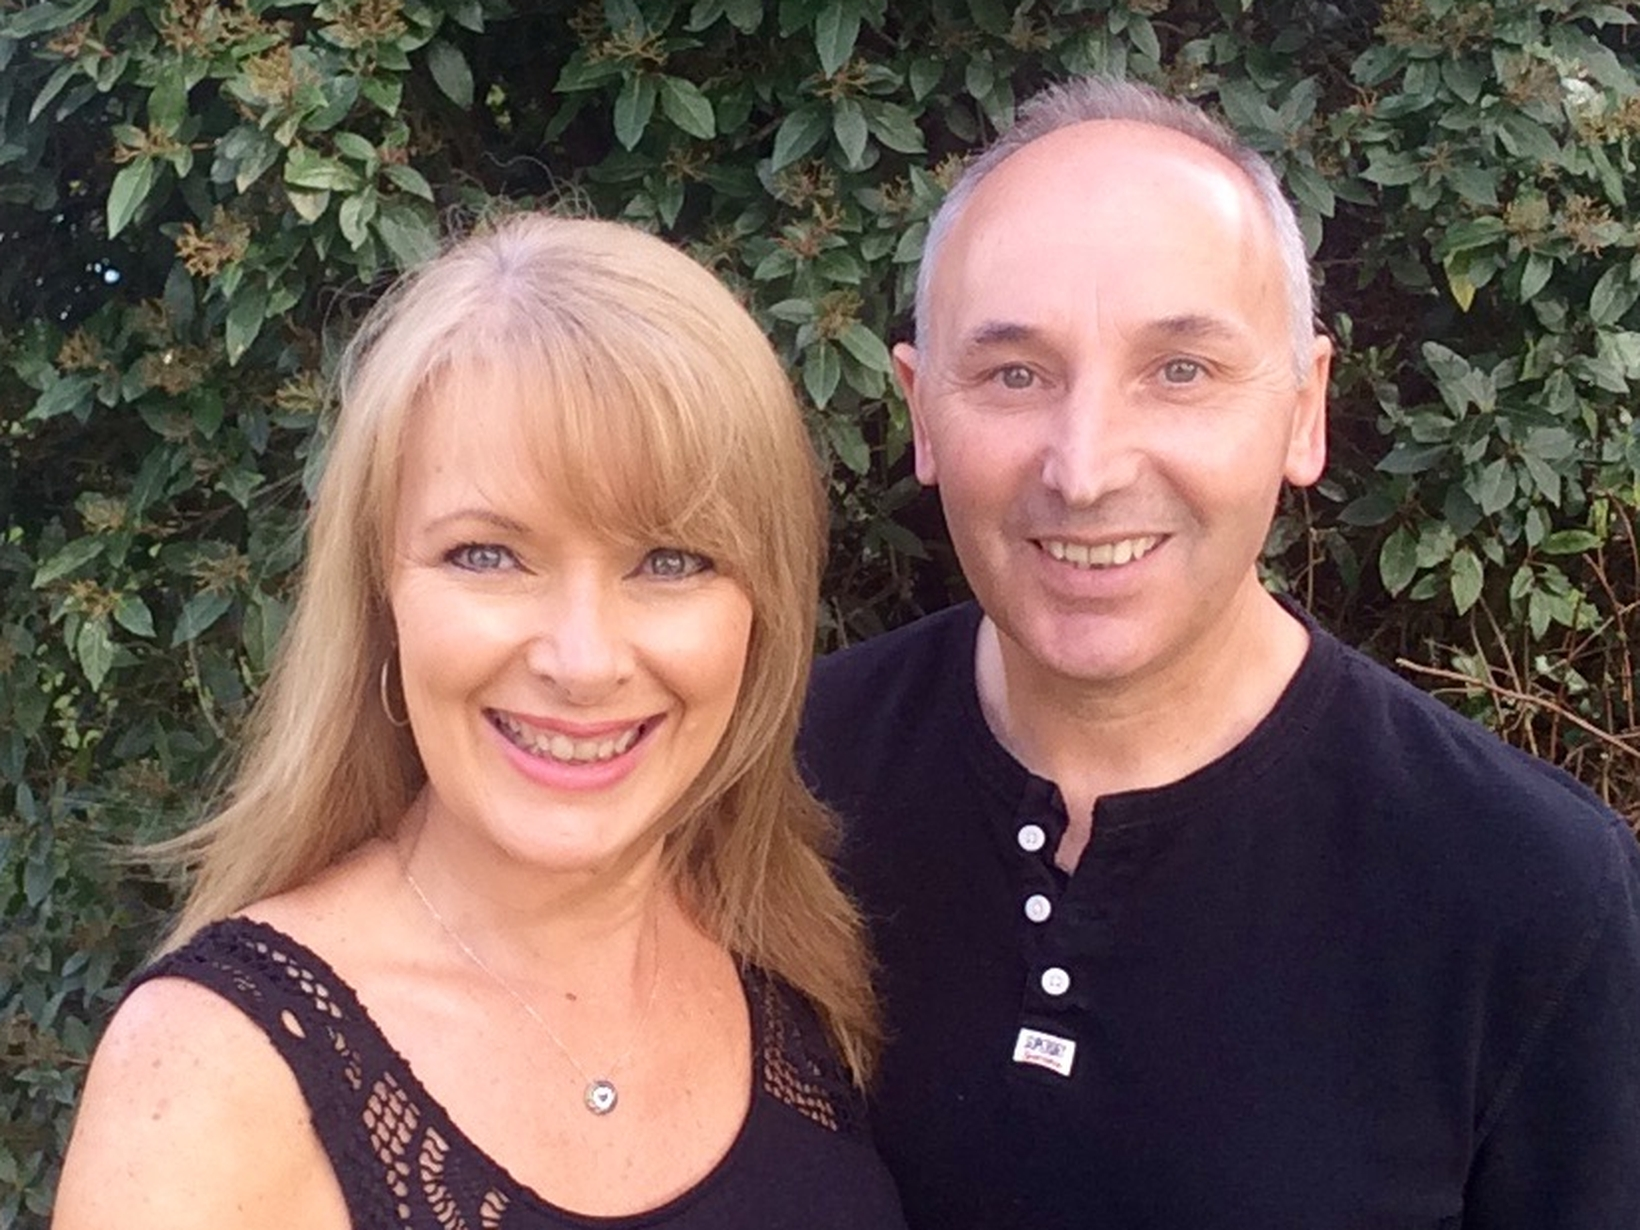 Sue-anne & Stephen from Sydney, New South Wales, Australia